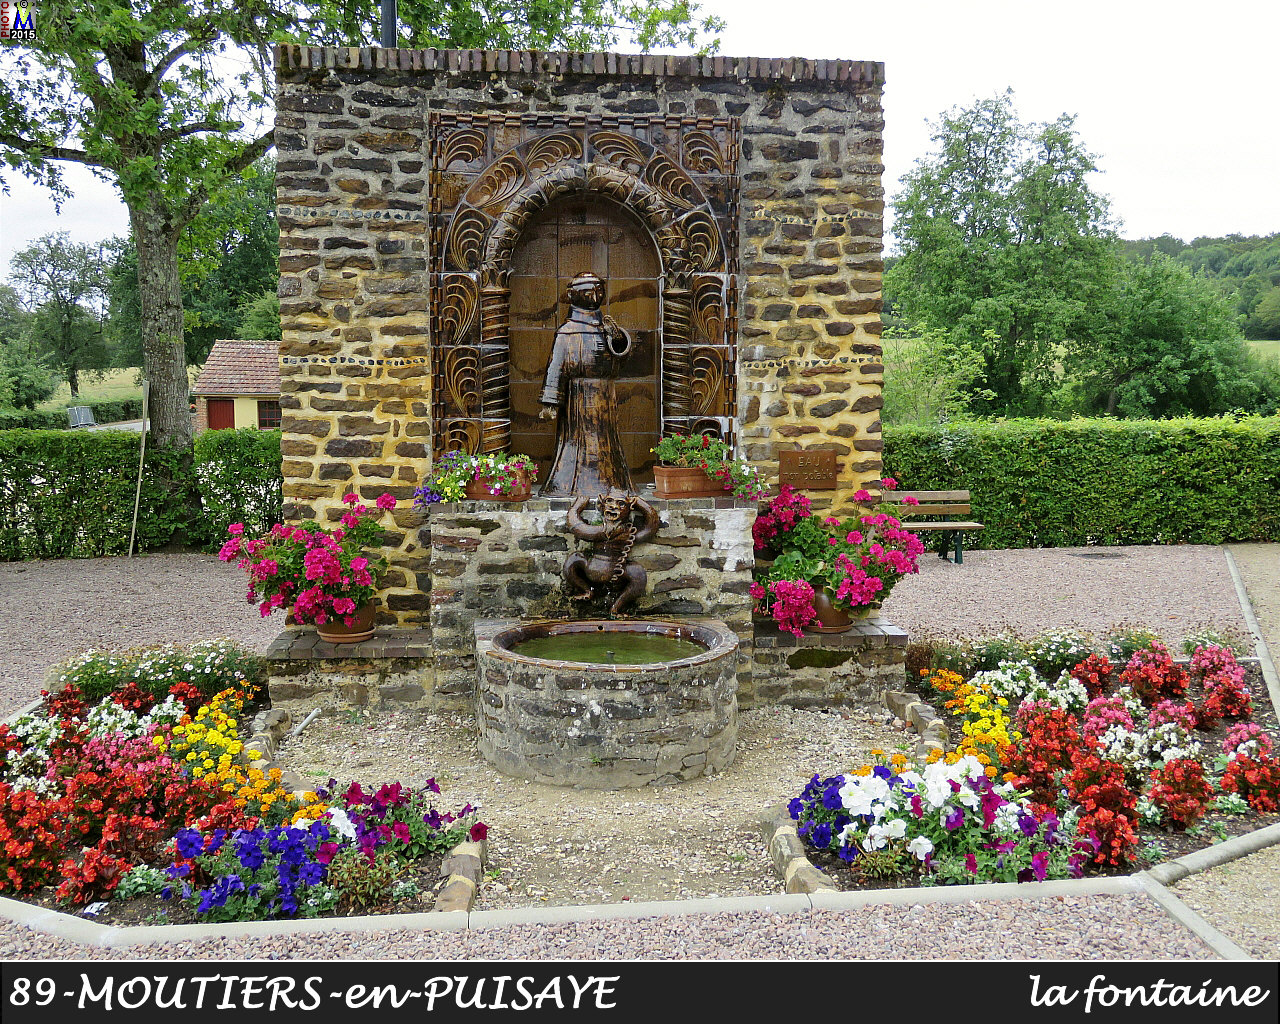 89MOUTIERS-PUISAYE_fontaine_100.jpg